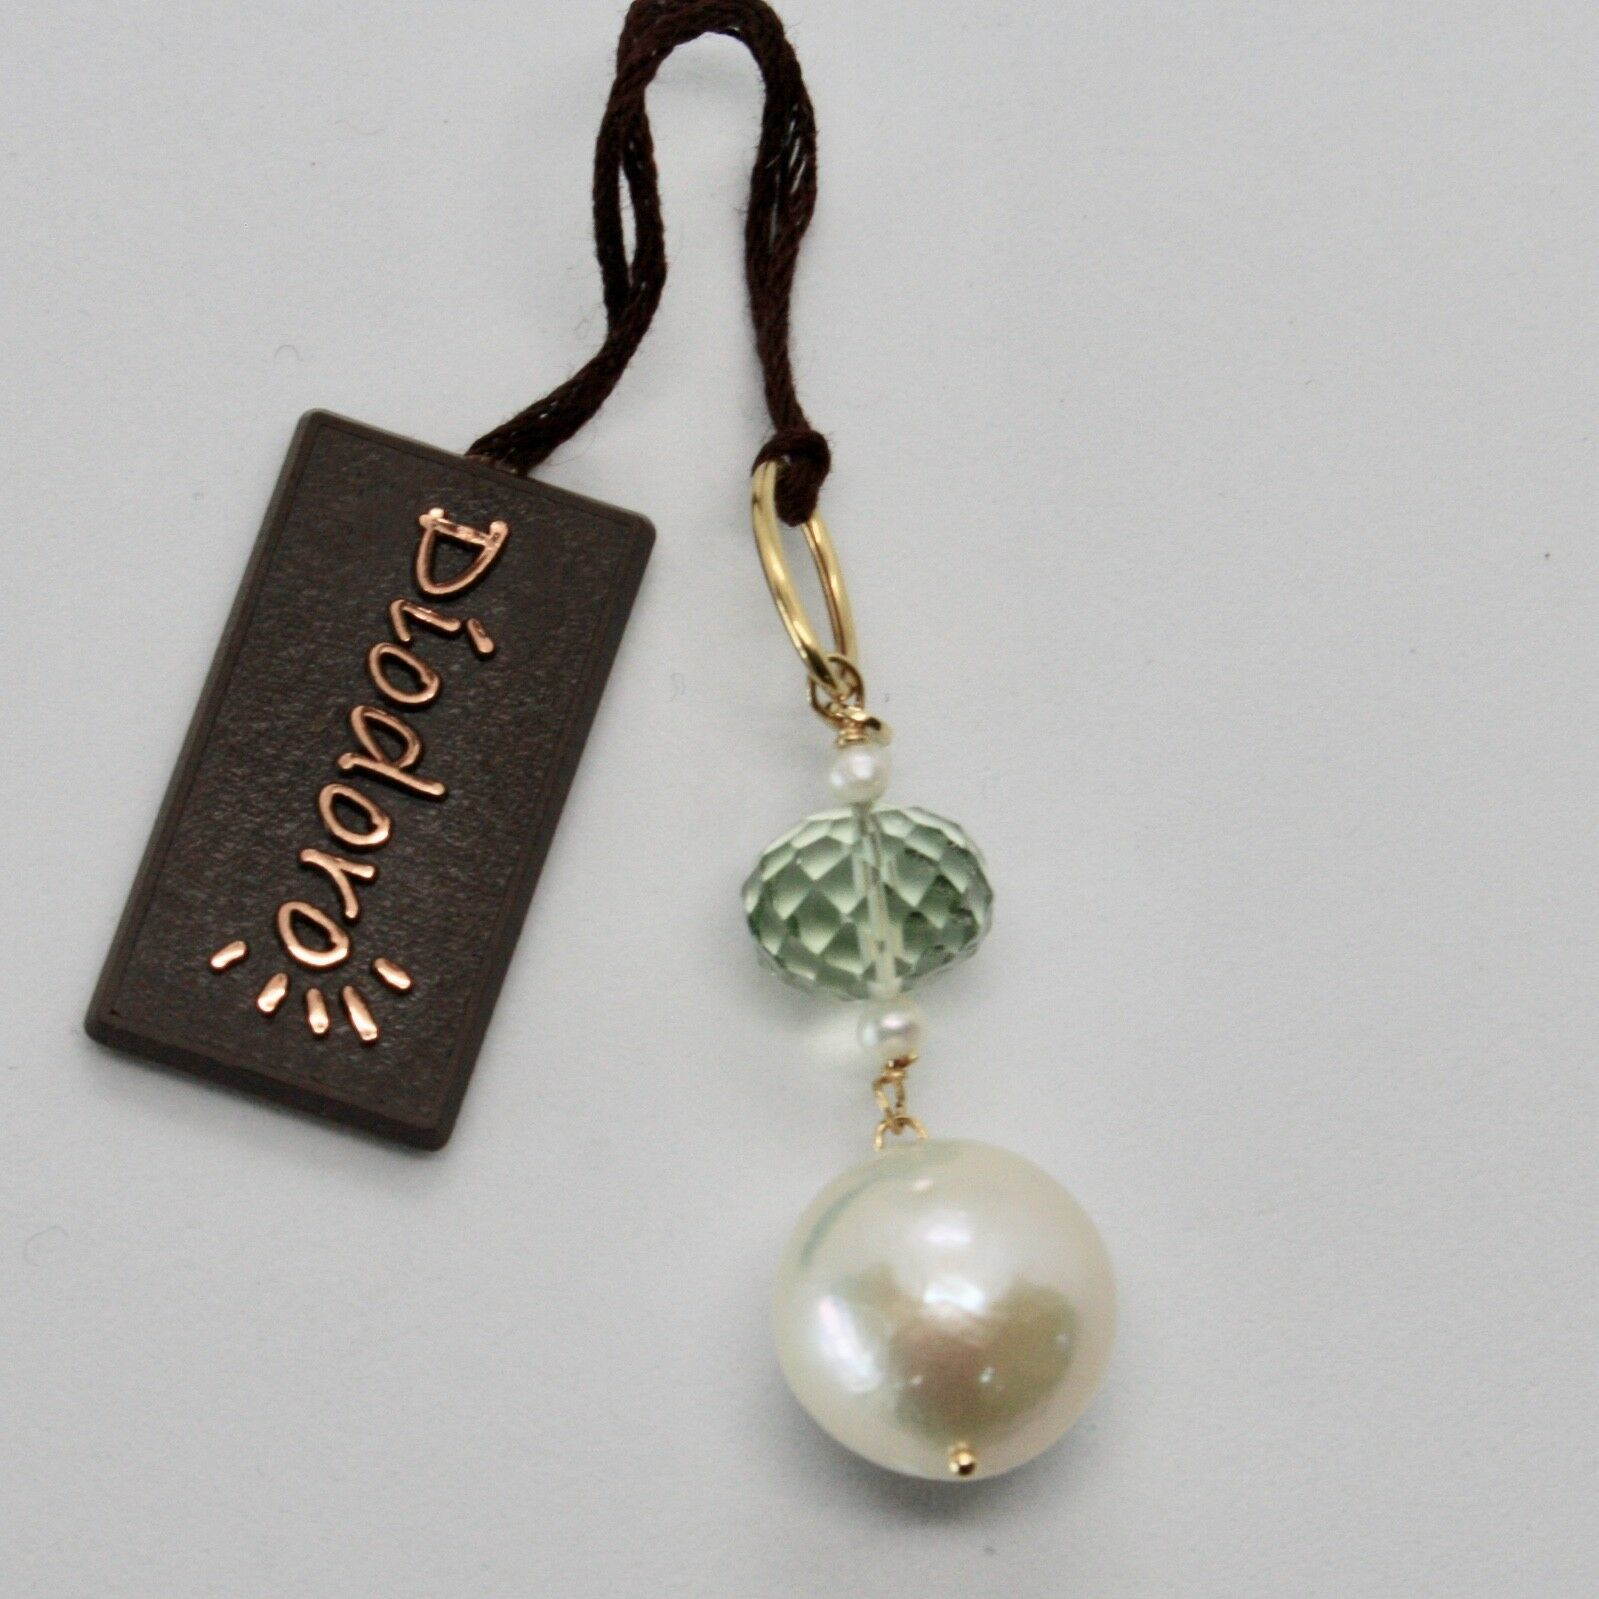 Charm 18kt Yellow Gold with White Pearl Freshwater and Prasiolite Green